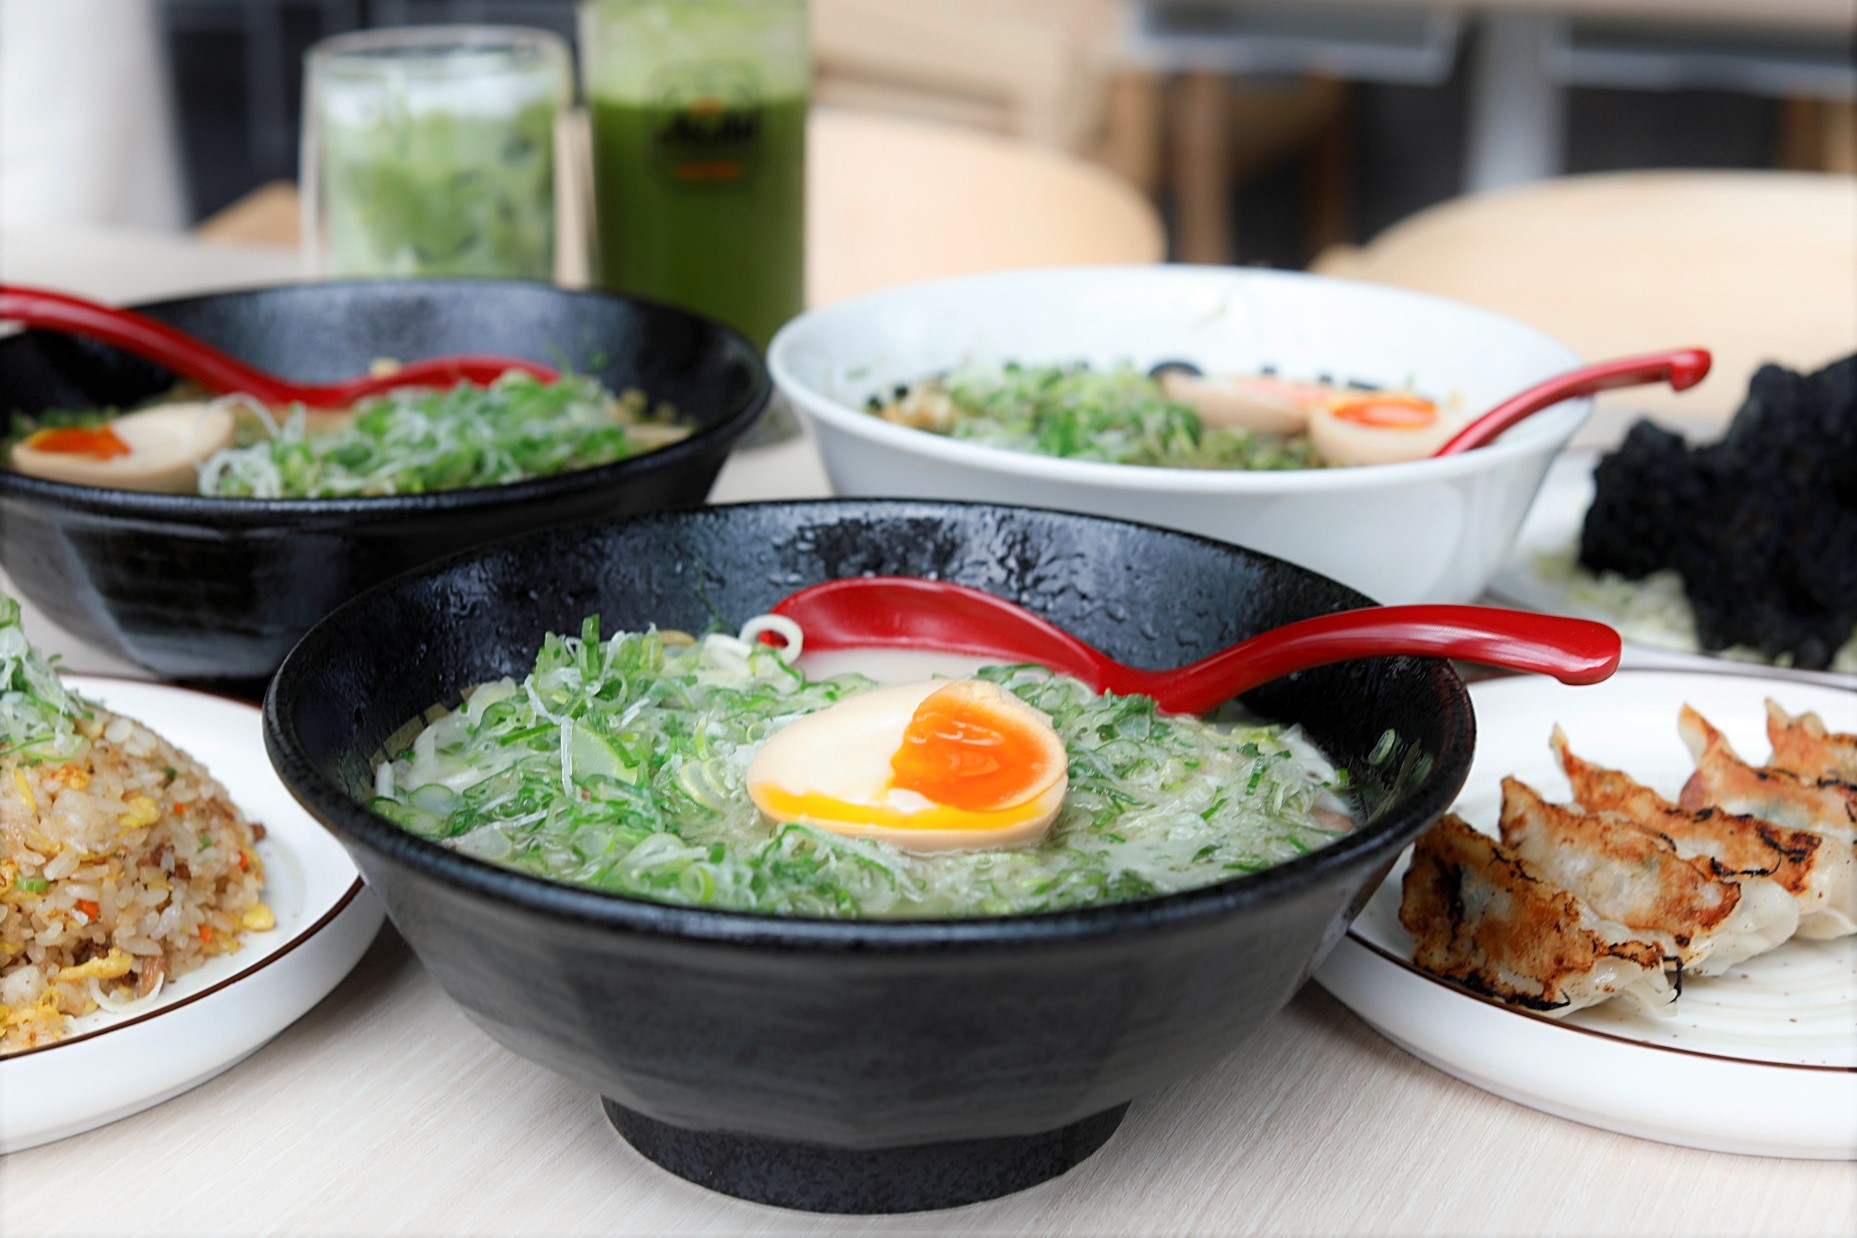 Menbaka Ramen Singapore – Famous Kyoto Fire Ramen Arrives With 1-For-1 Special. Here's A First Look